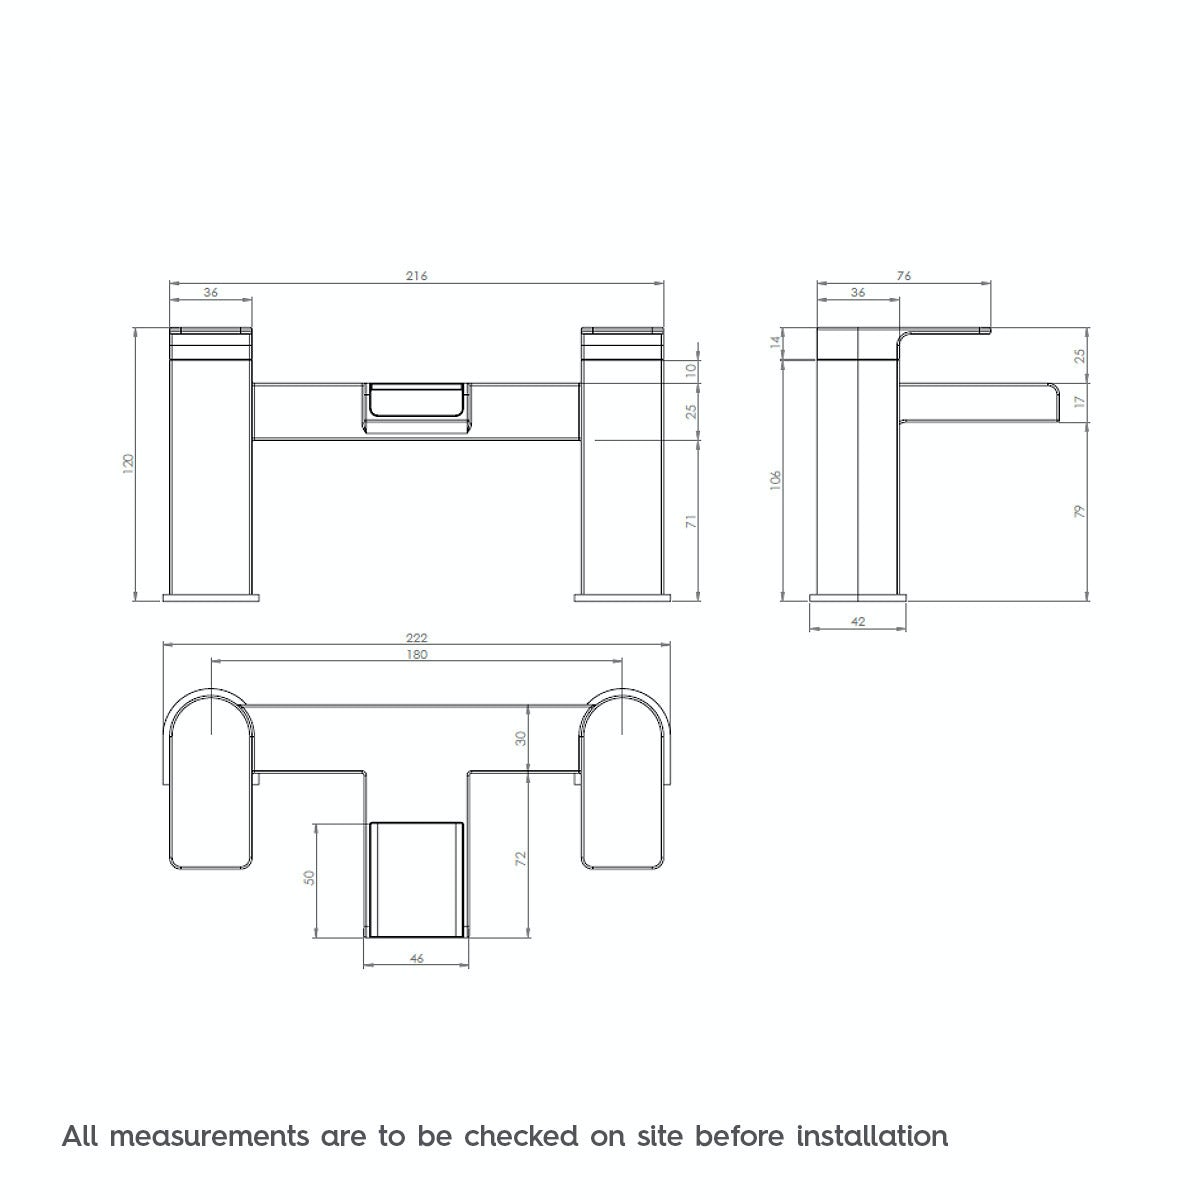 Dimensions for Mode Freemont bath mixer tap